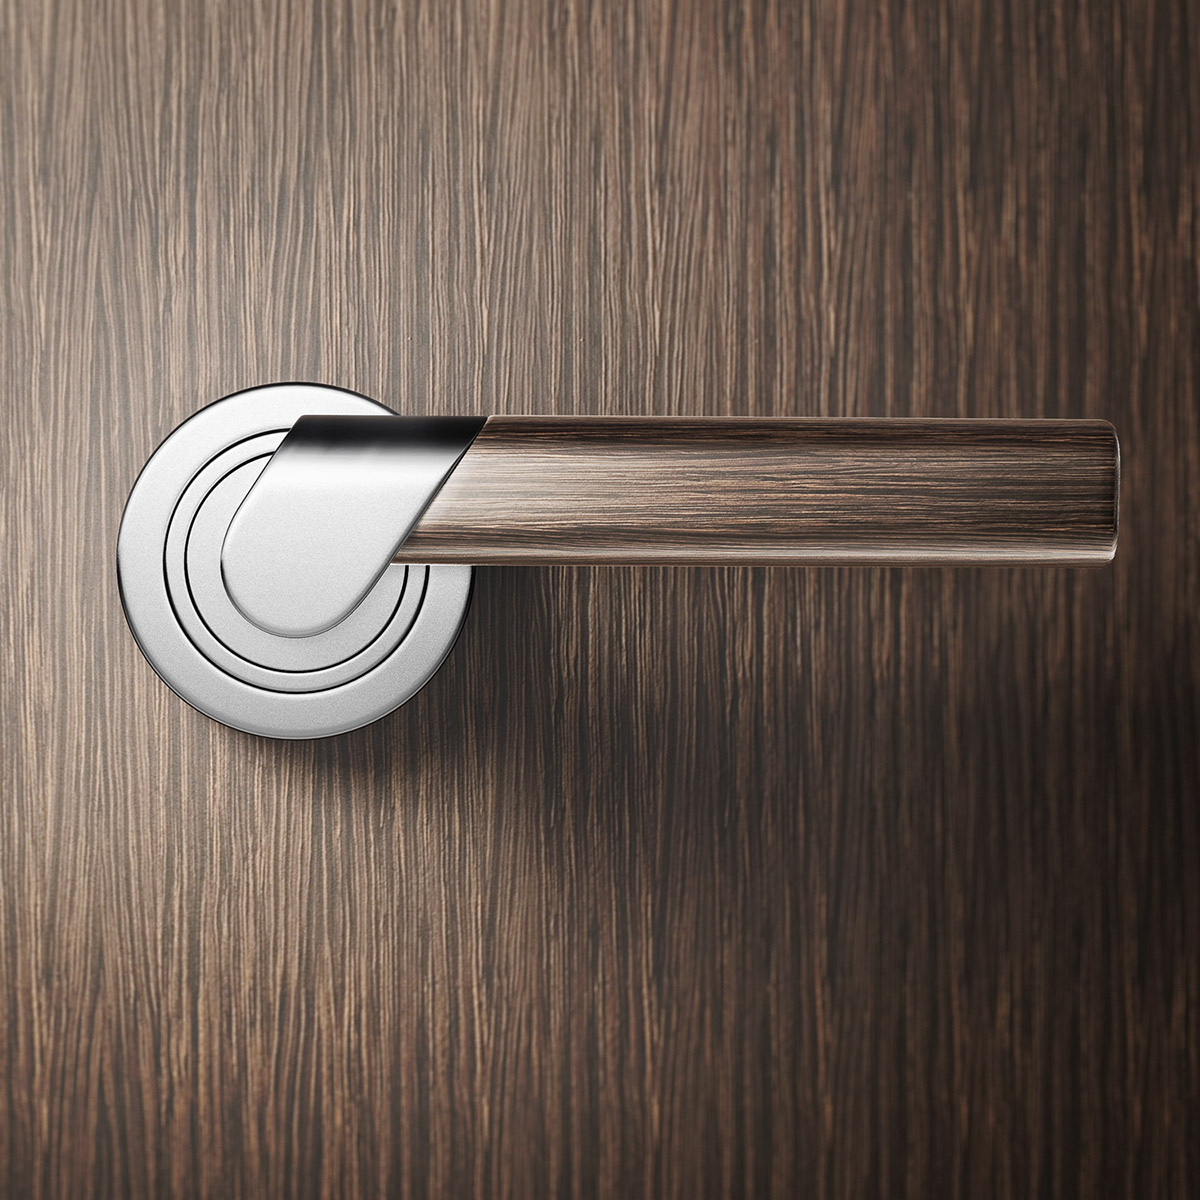 SLICE   Door Handle. Https://www.facebook.com/redodesign.eu